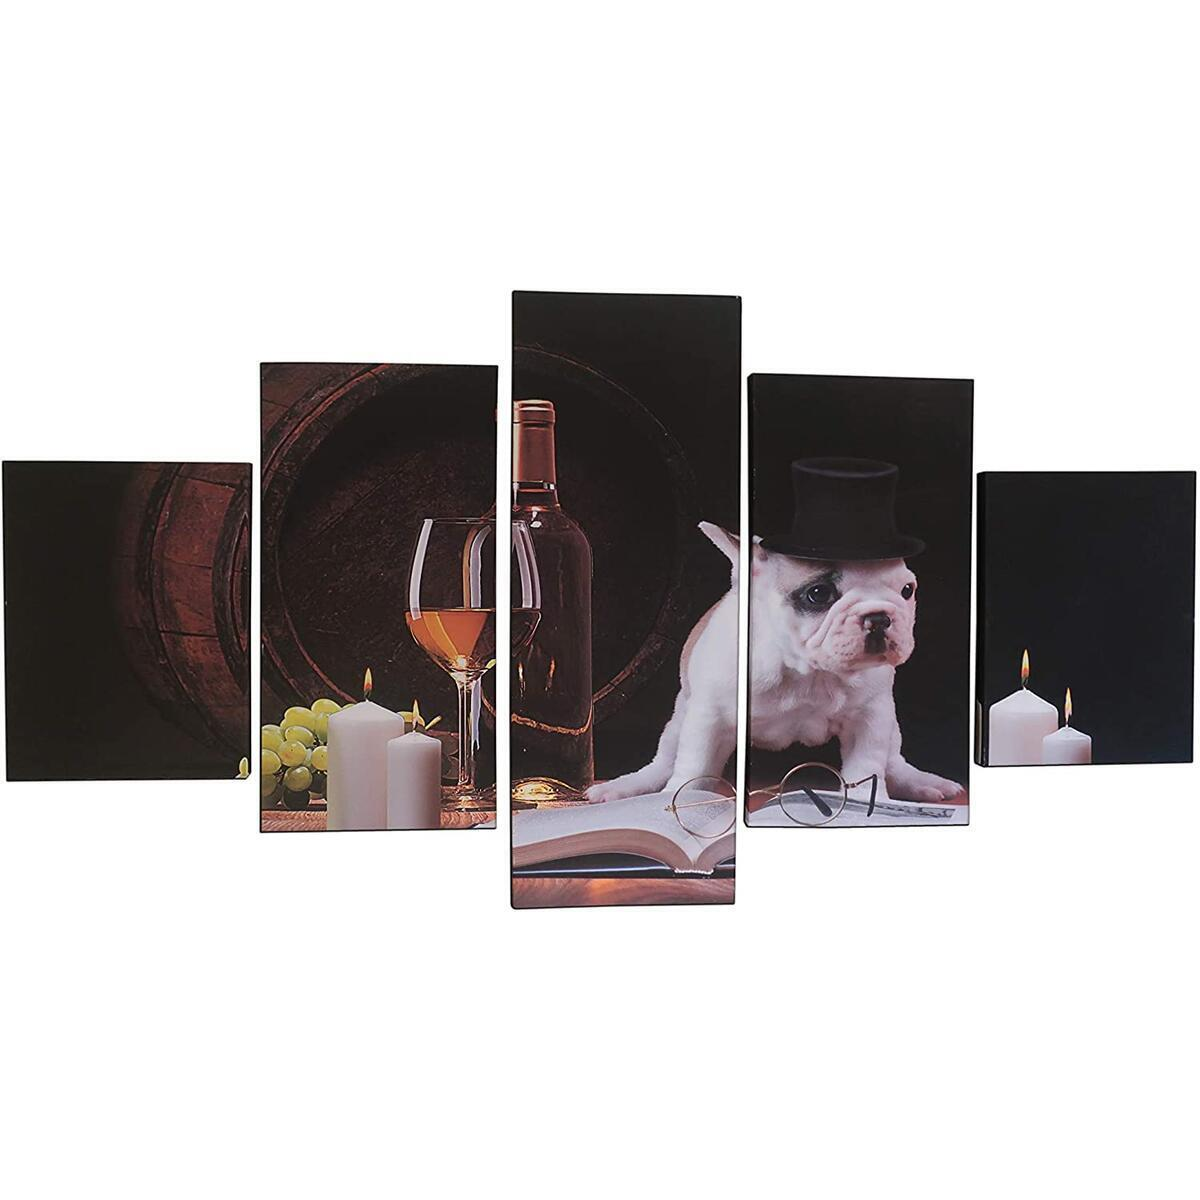 """LuckyChoice Canvas Wall Art Painting/Five Piece Sectioned Canvas Wall Art/Beautiful High-Resolution Printed Rustic Photo of Dog Drinking Wine – 59"""" x 31.5""""- Perfect for Bar, Dorm Room, Family Room"""